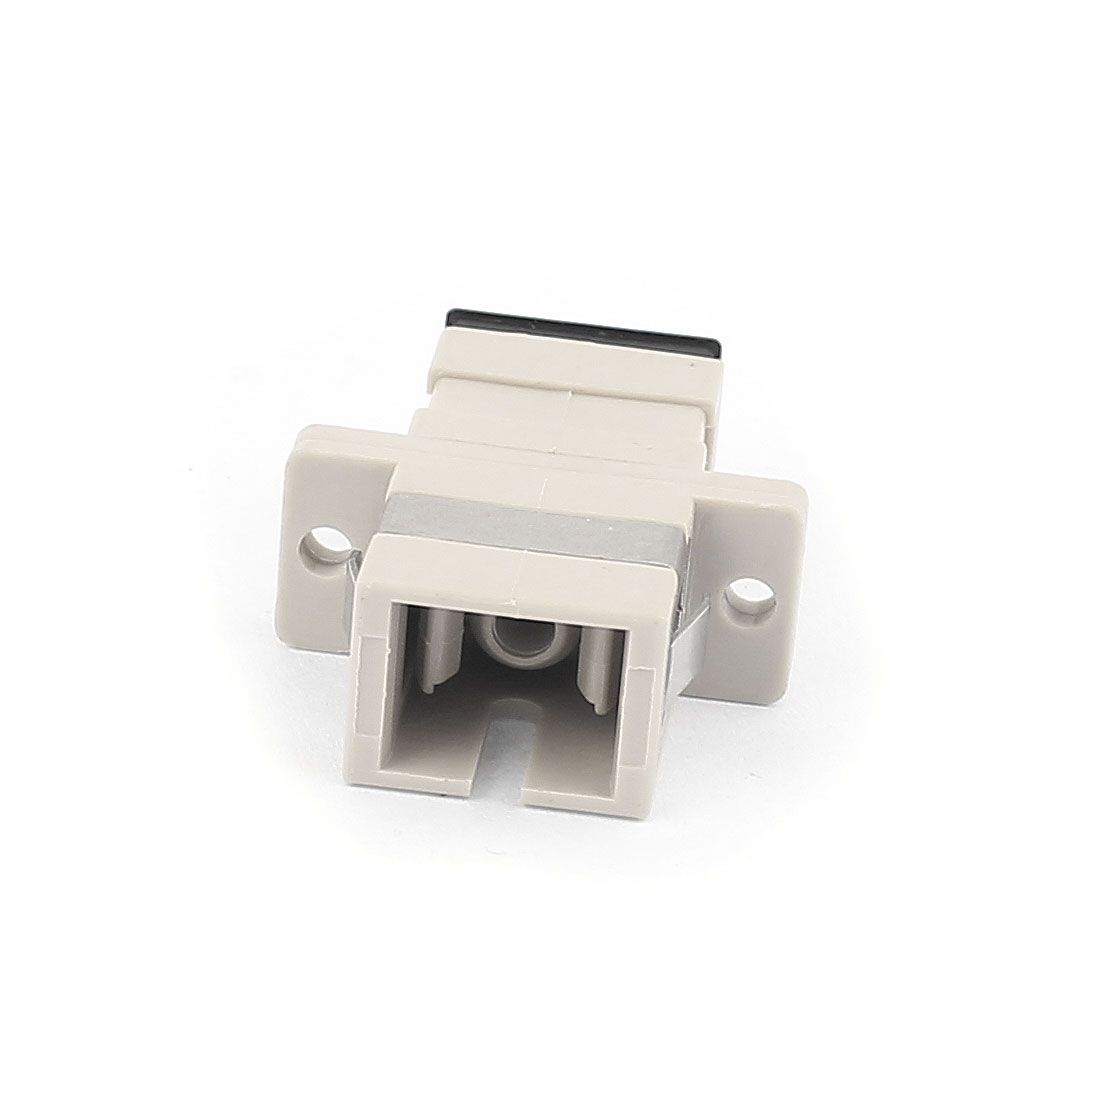 SC/SC Simplex MM SM Fiber Optical Flange Adapter Cable Connector Gray